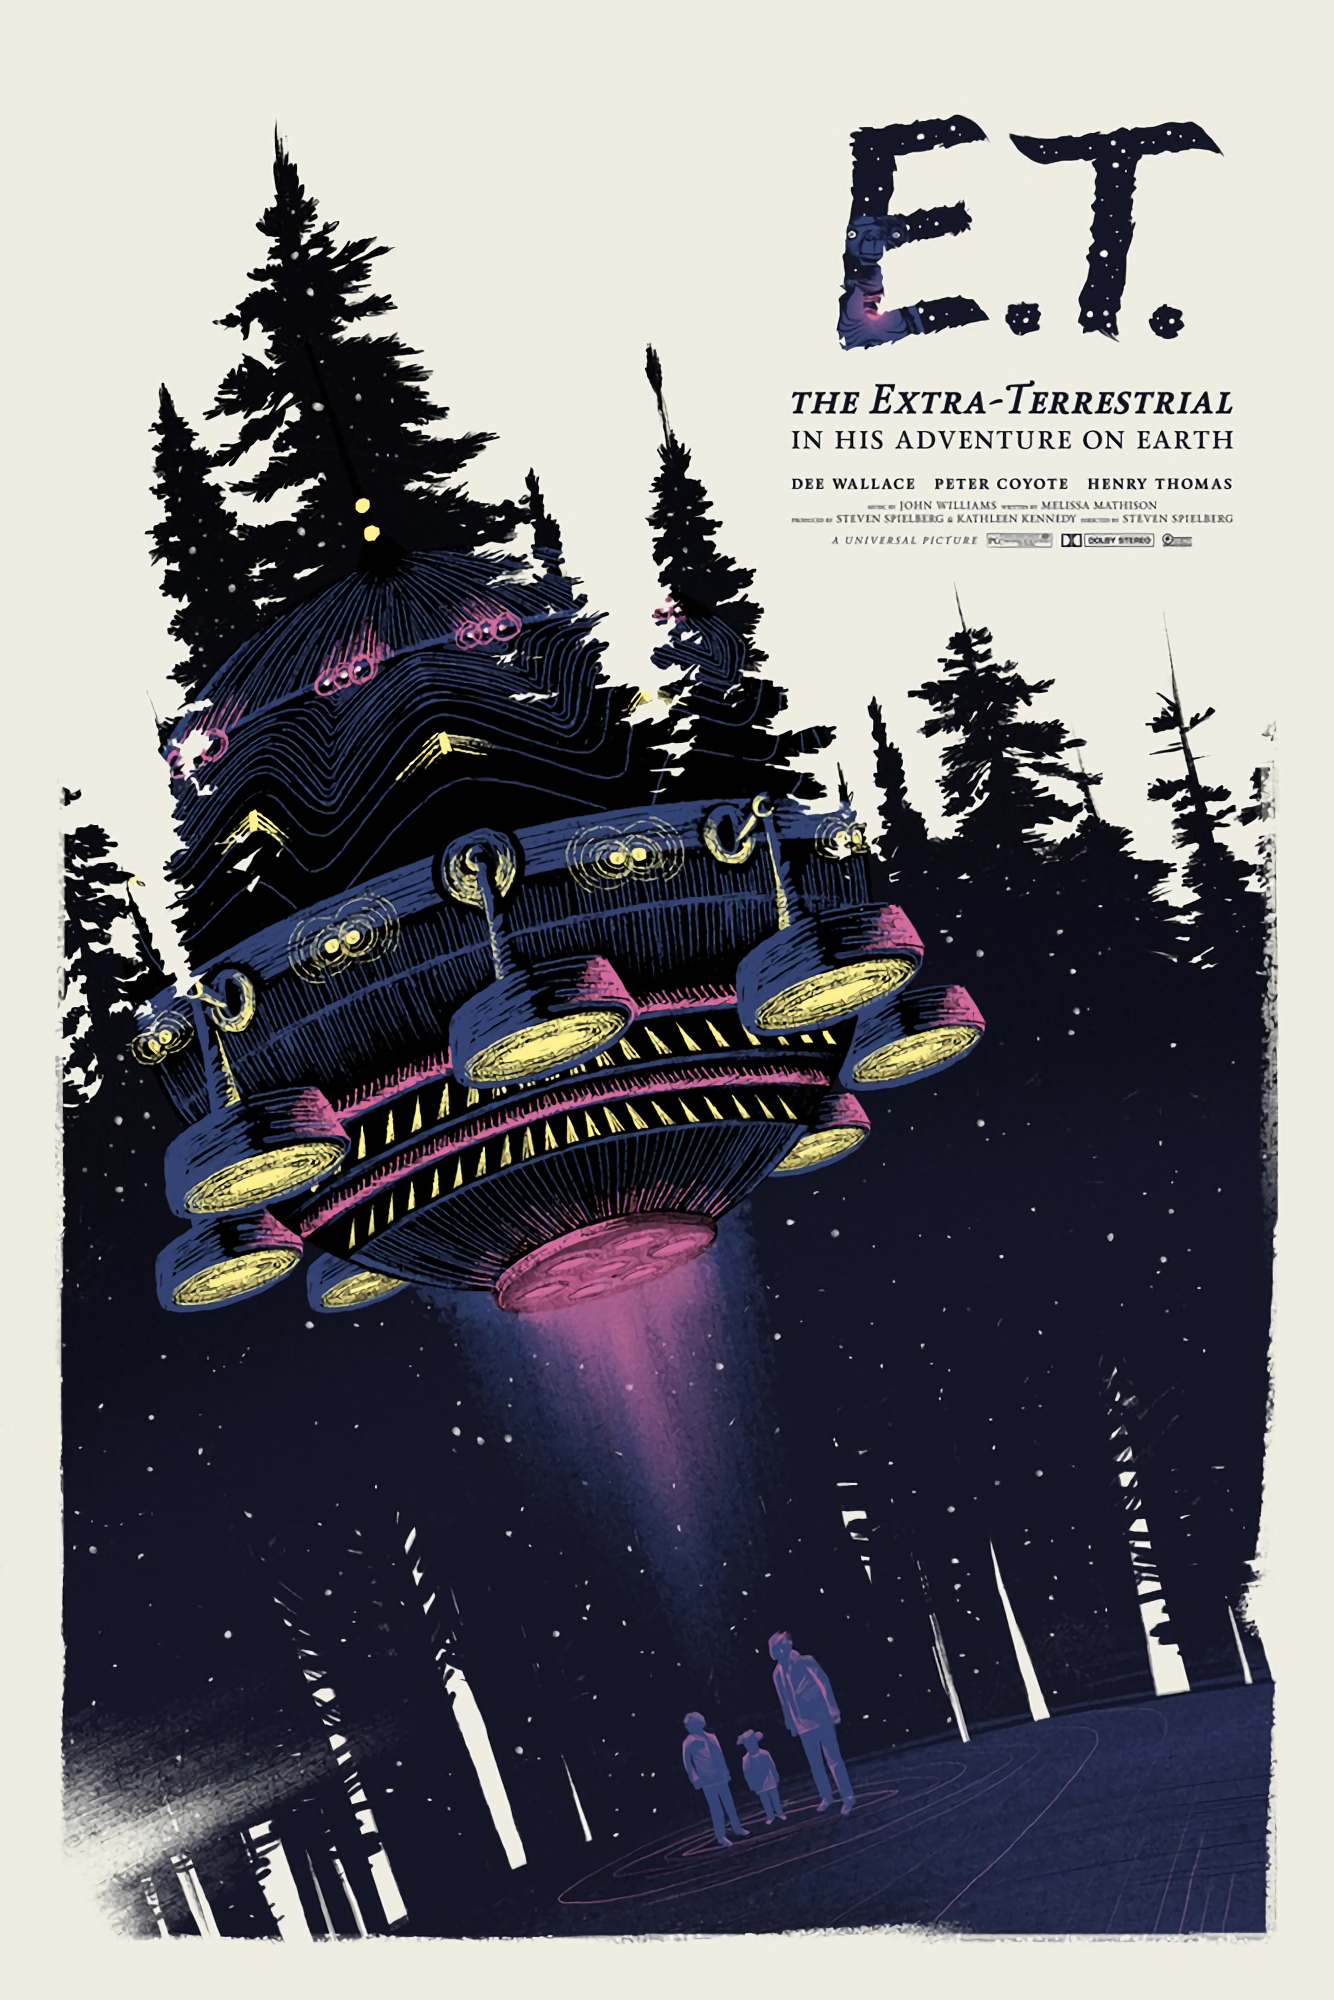 Movie poster PRINT E.T Dee Wallace Alternative Movie Poster Print Steven Spielberg The Extra-terrestrial Henry Thomas